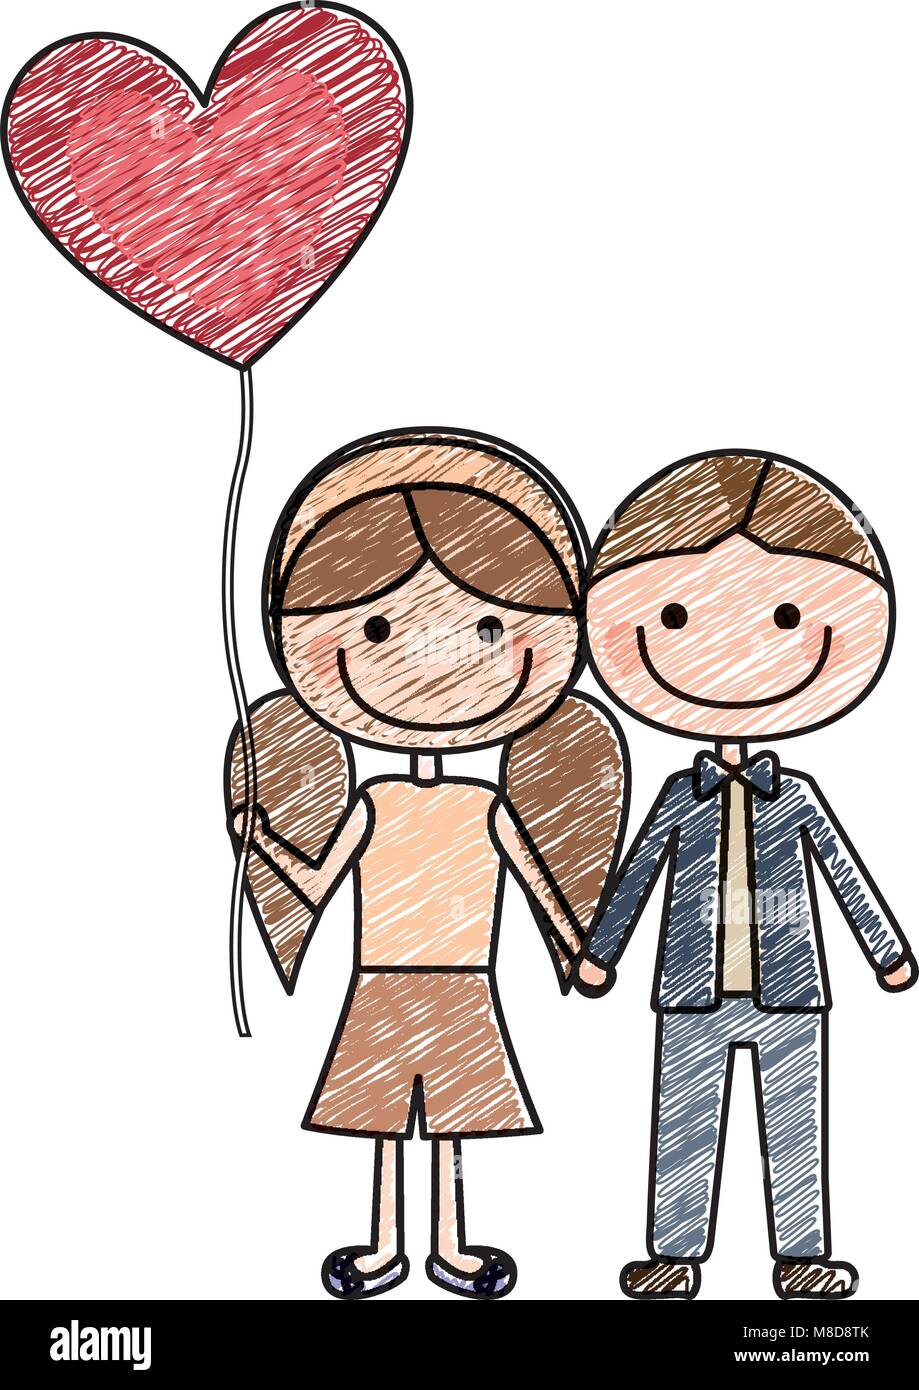 color pencil drawing of caricature of boy short hair and girl with pigtails hair with balloon in shape of heart Stock Vector